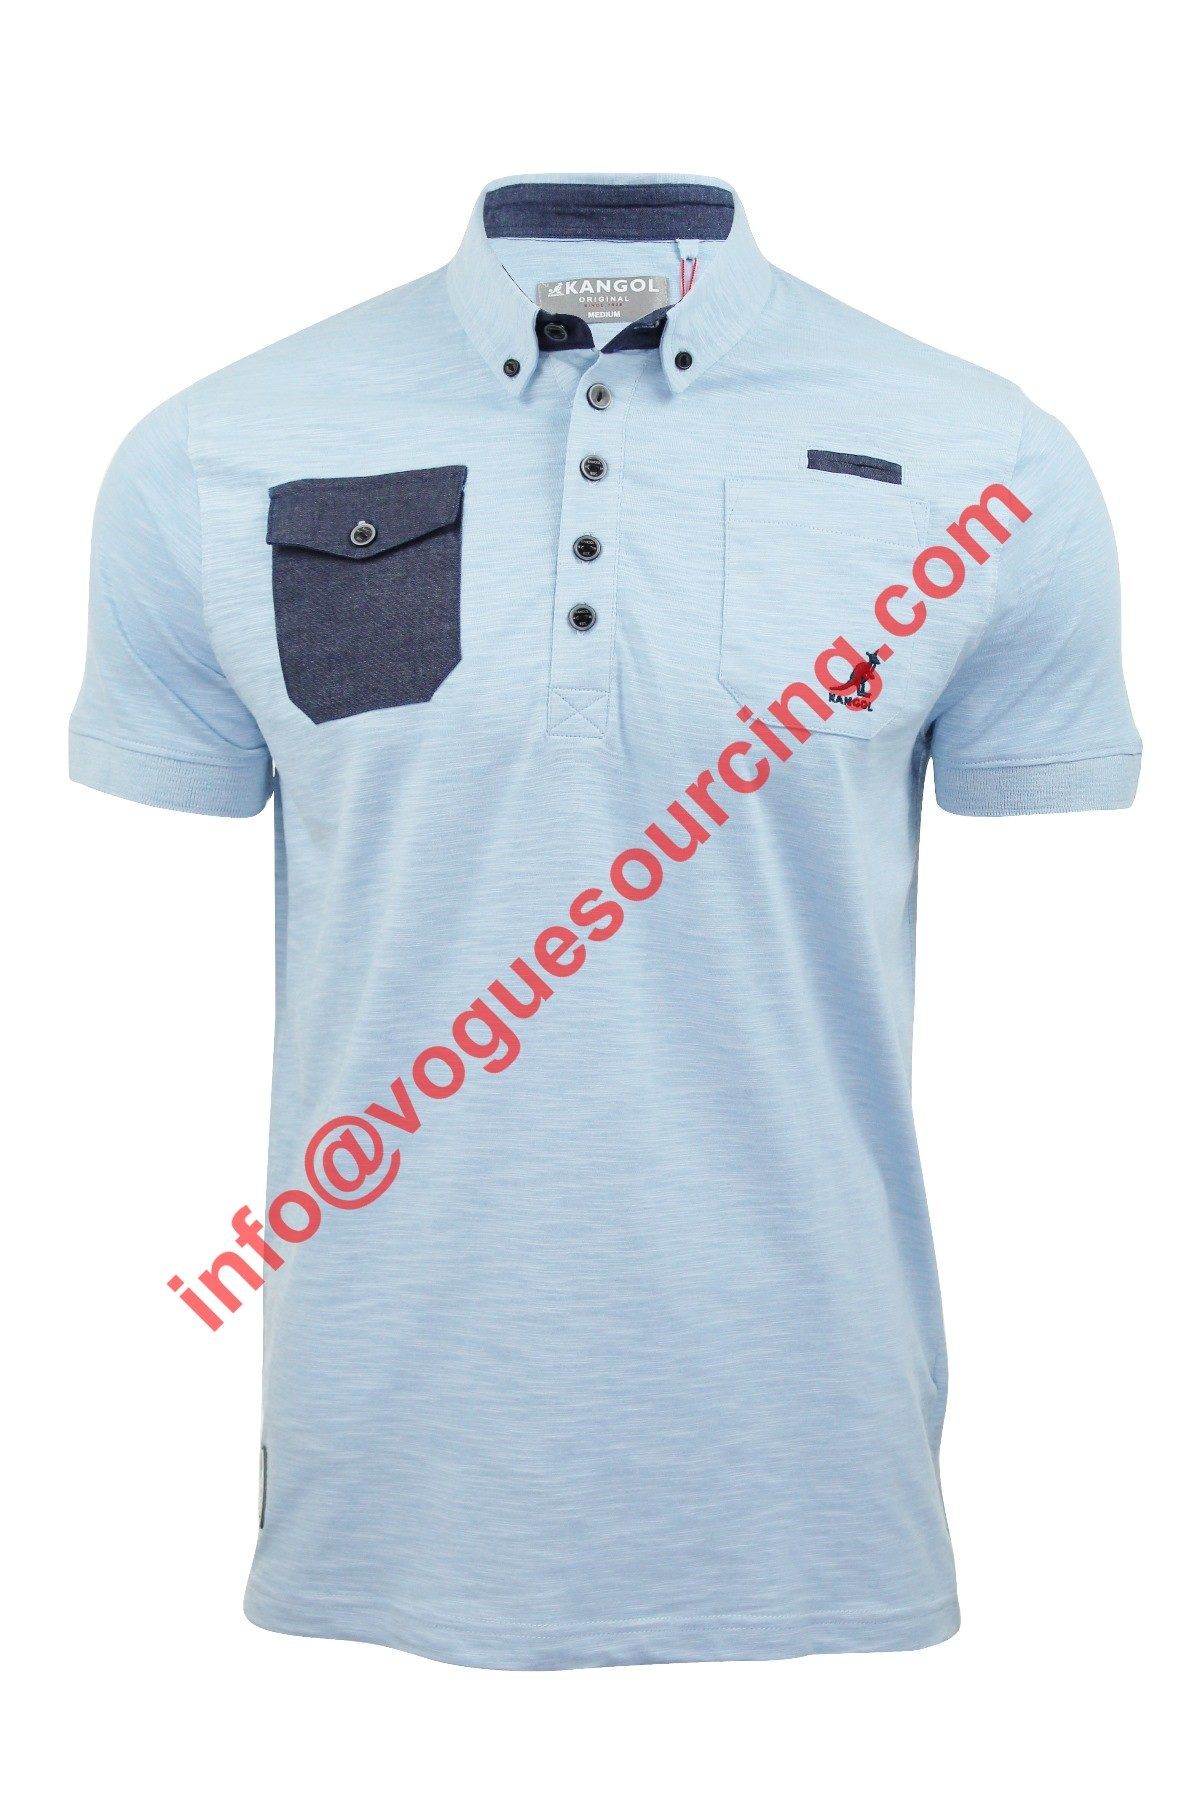 pocket-polo-t-shirt-manufacturers-suppliers-exporters-voguesourcing-tirupur-india